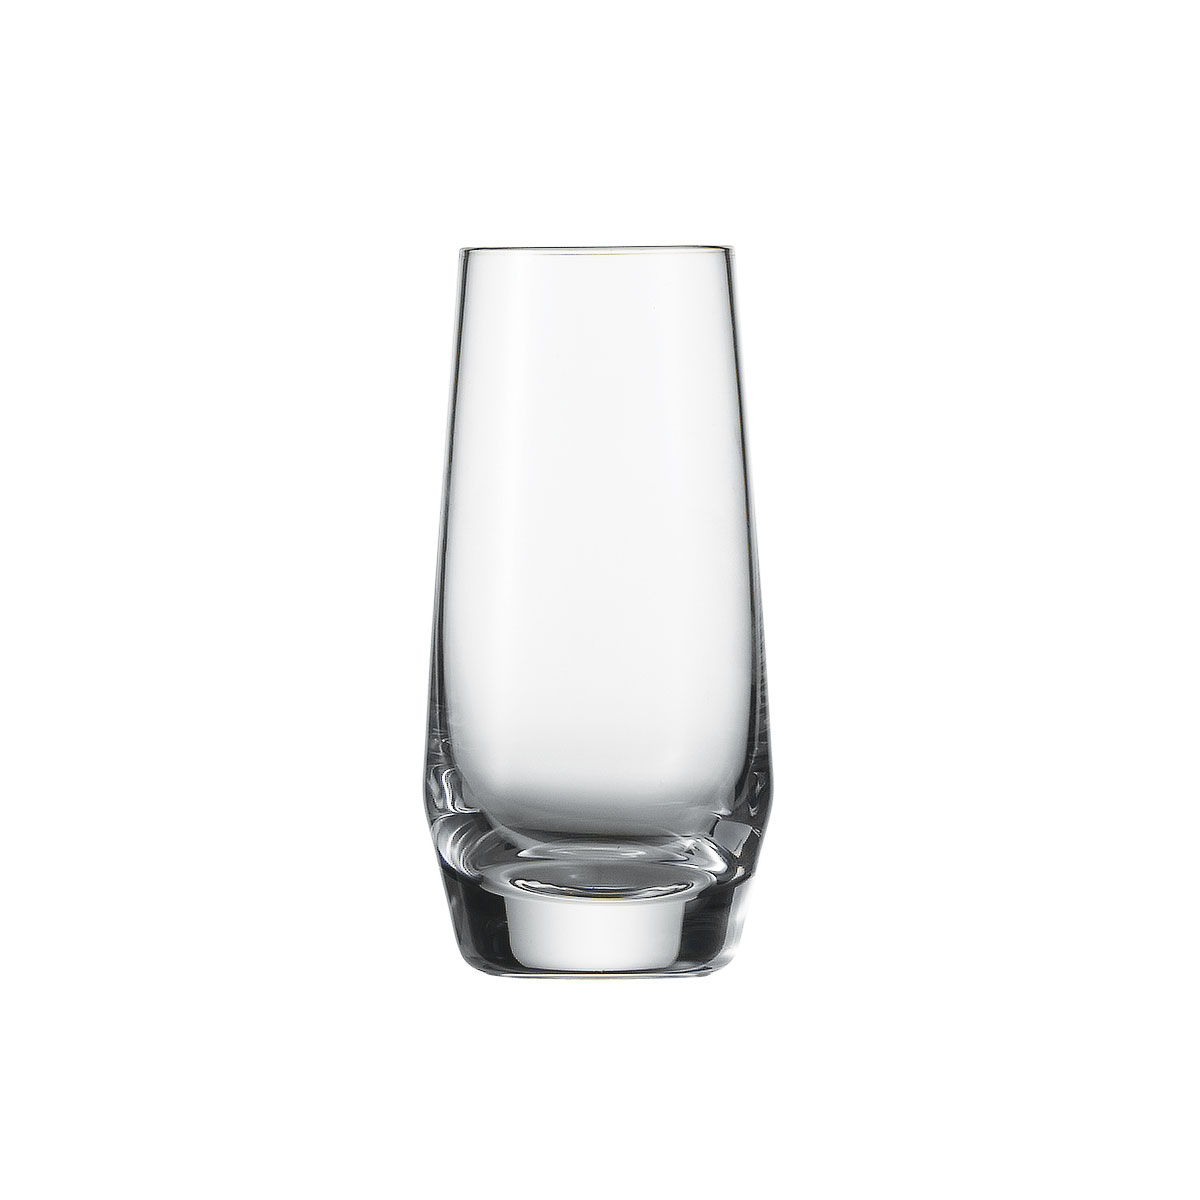 Schott Zwiesel Tritan Crystal, Pure Crystal Shot Glass, Single